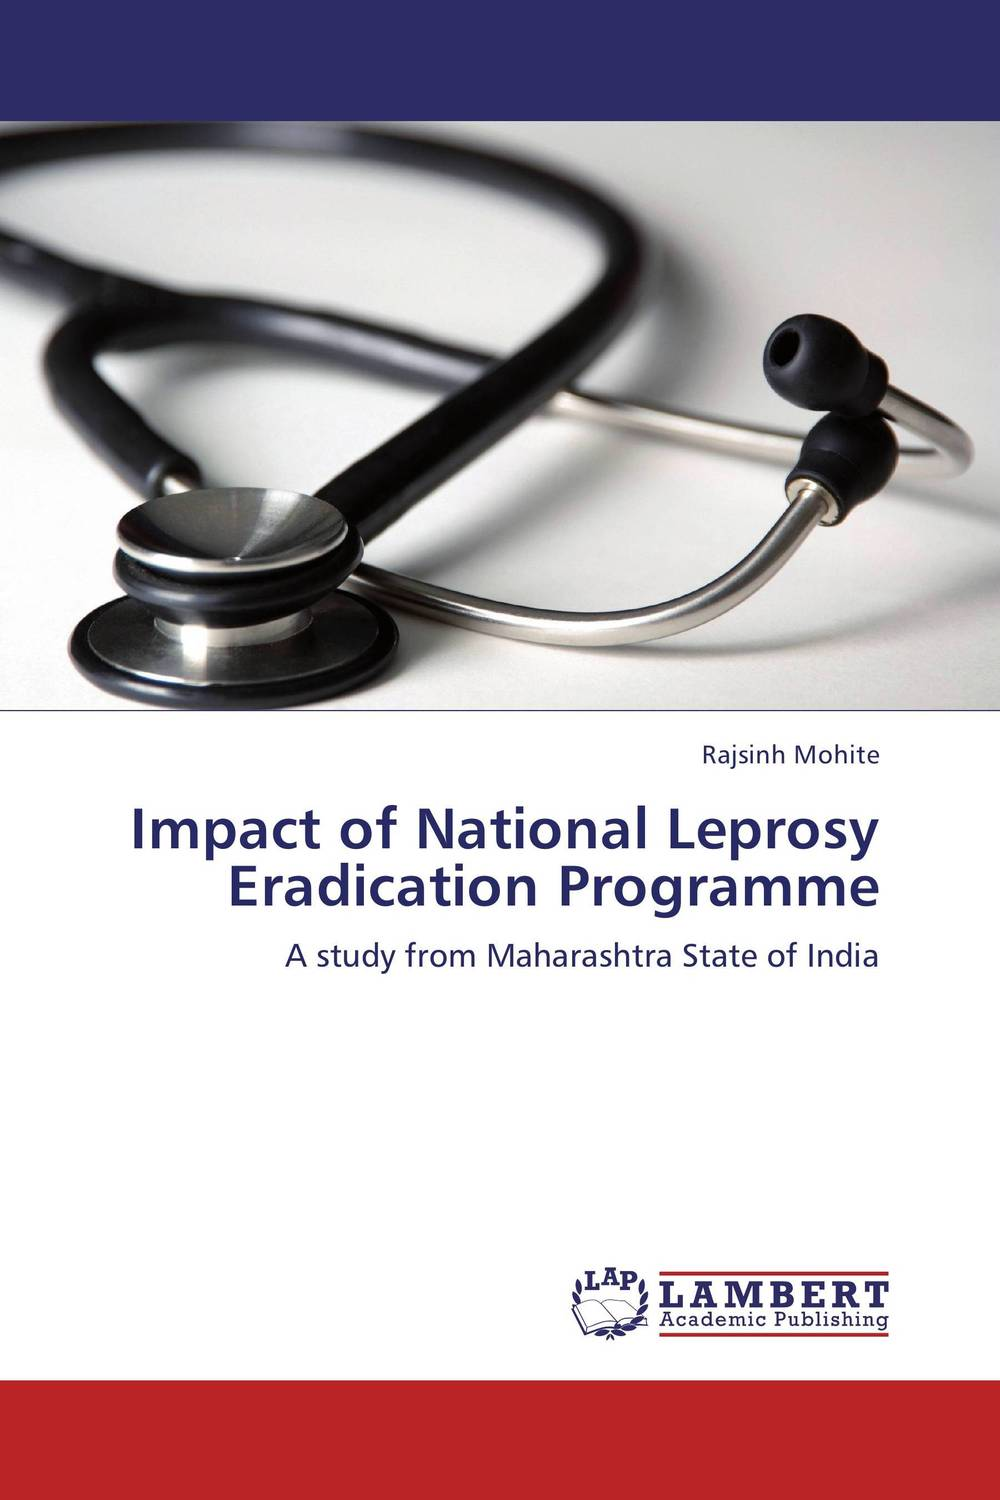 Impact of National Leprosy Eradication Programme rajsinh mohite impact of national leprosy eradication programme